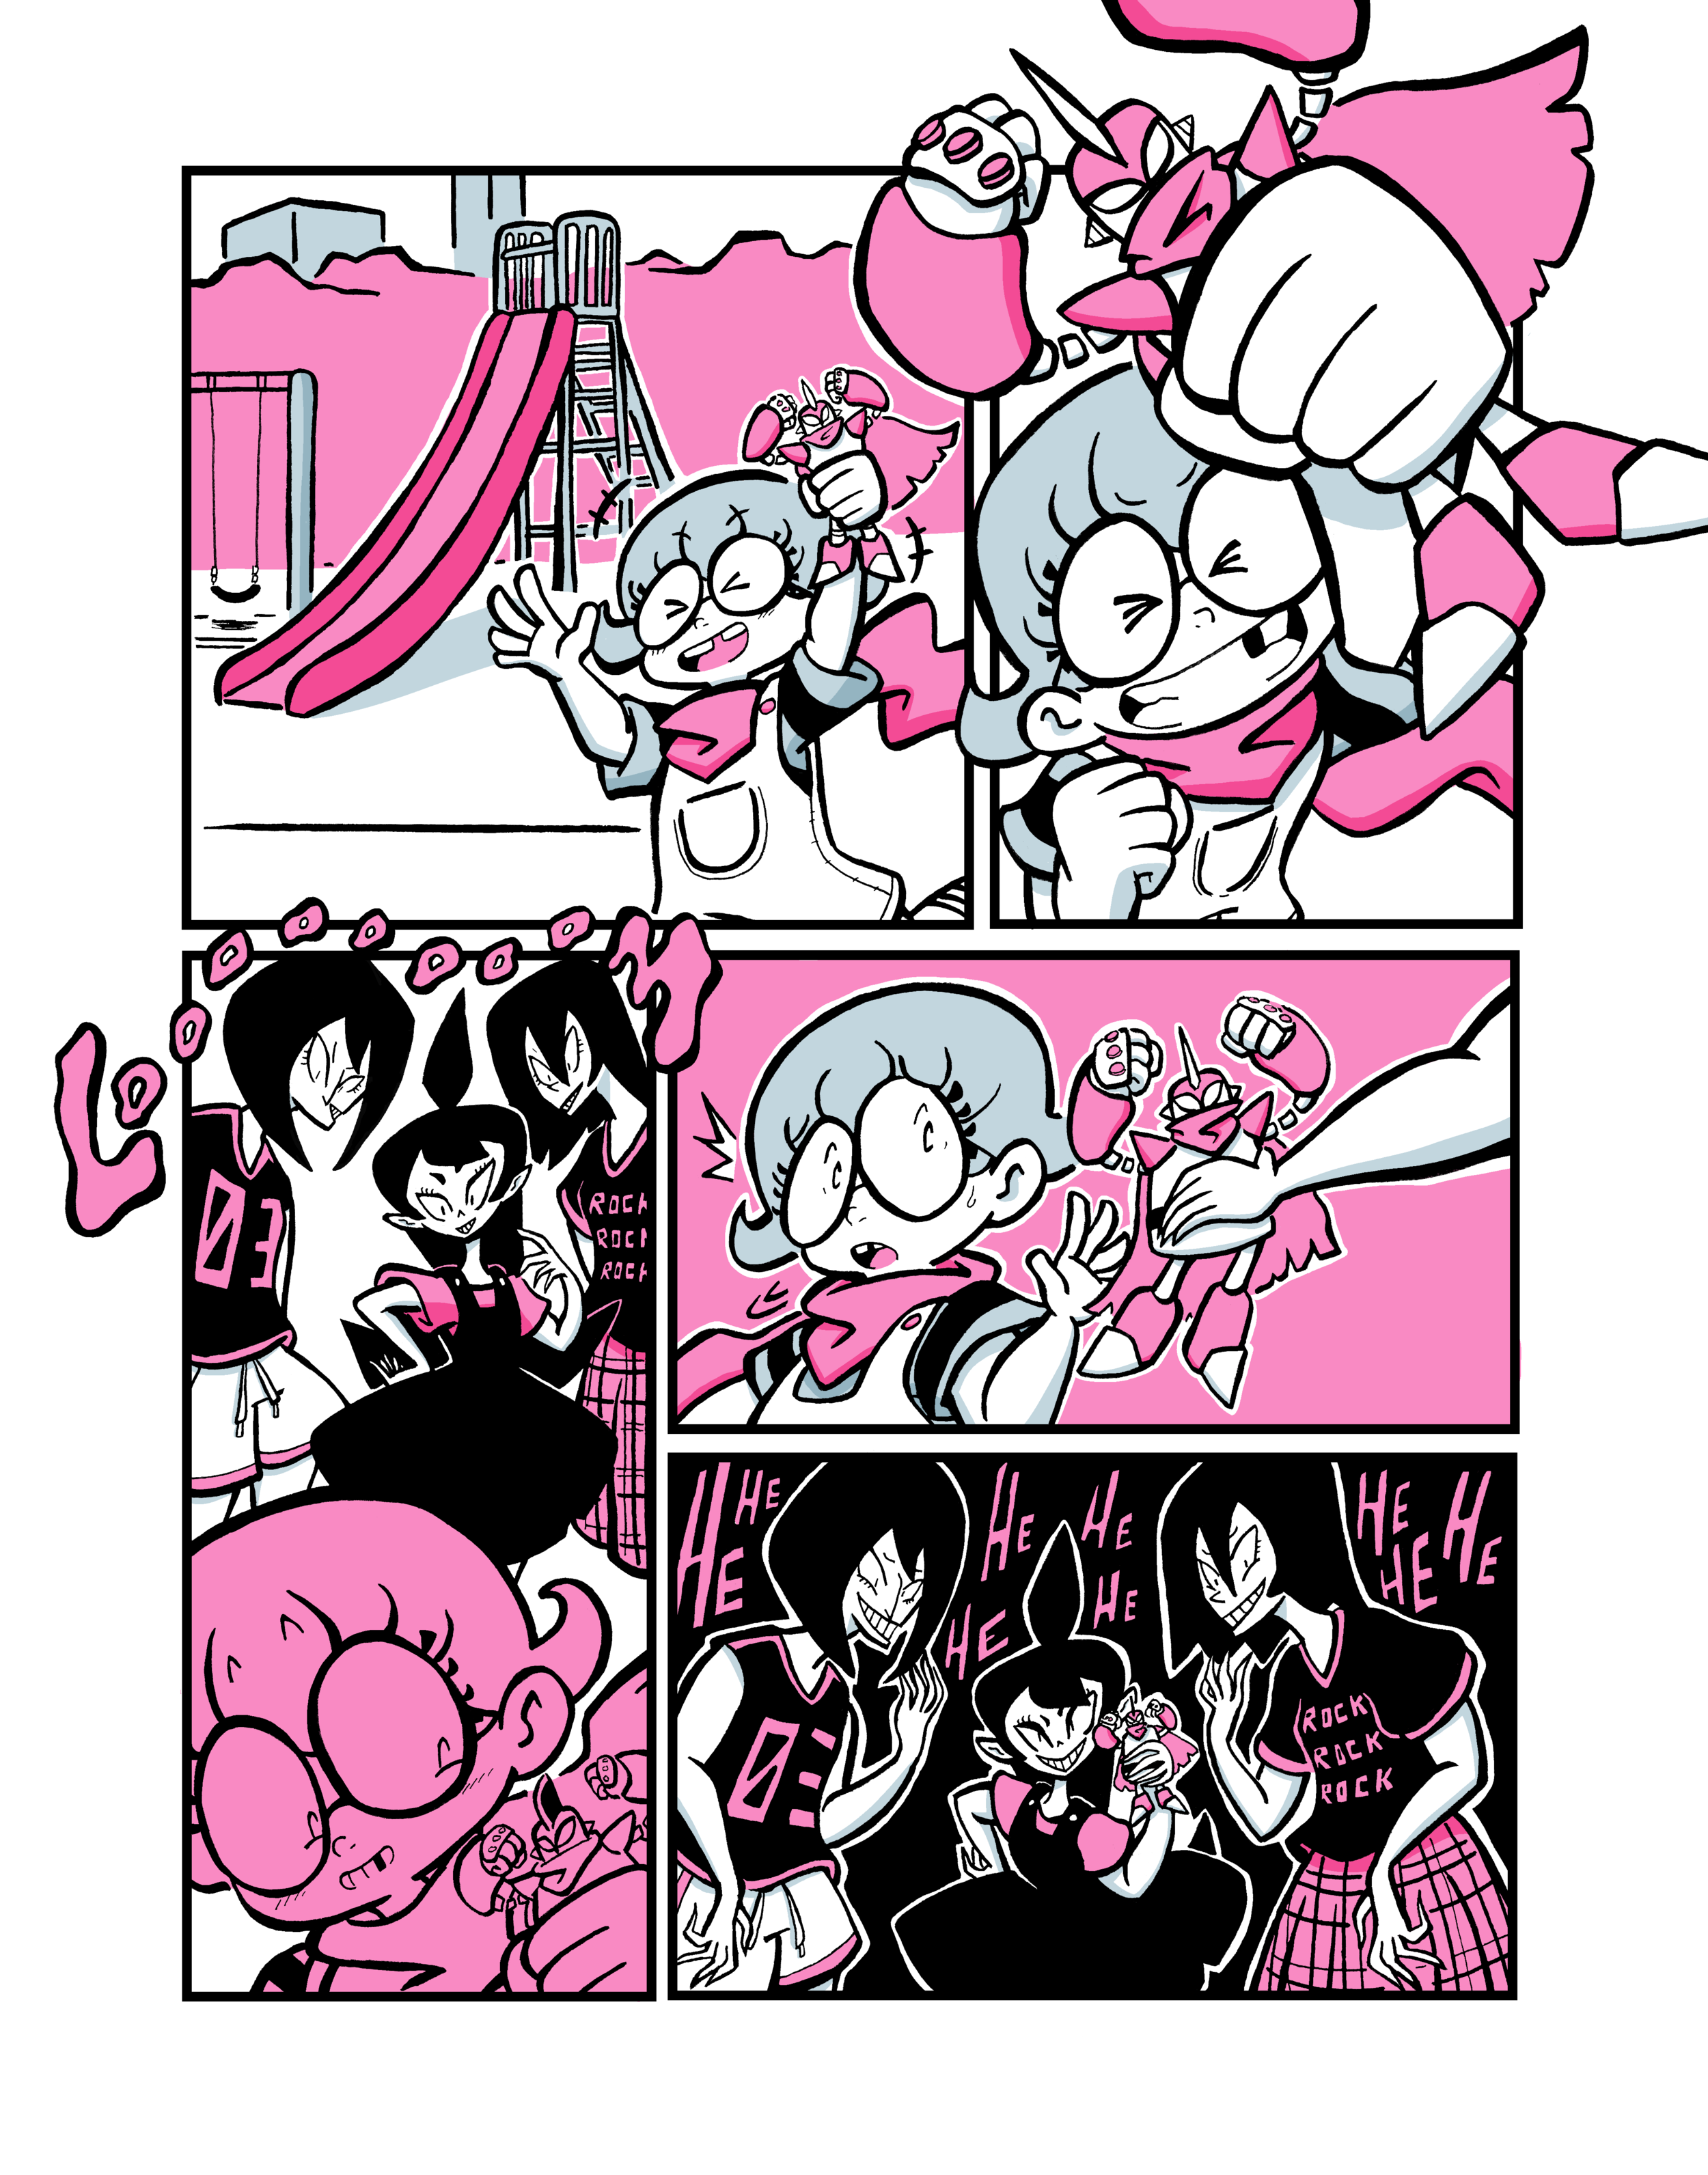 amgdoissue2page8.png